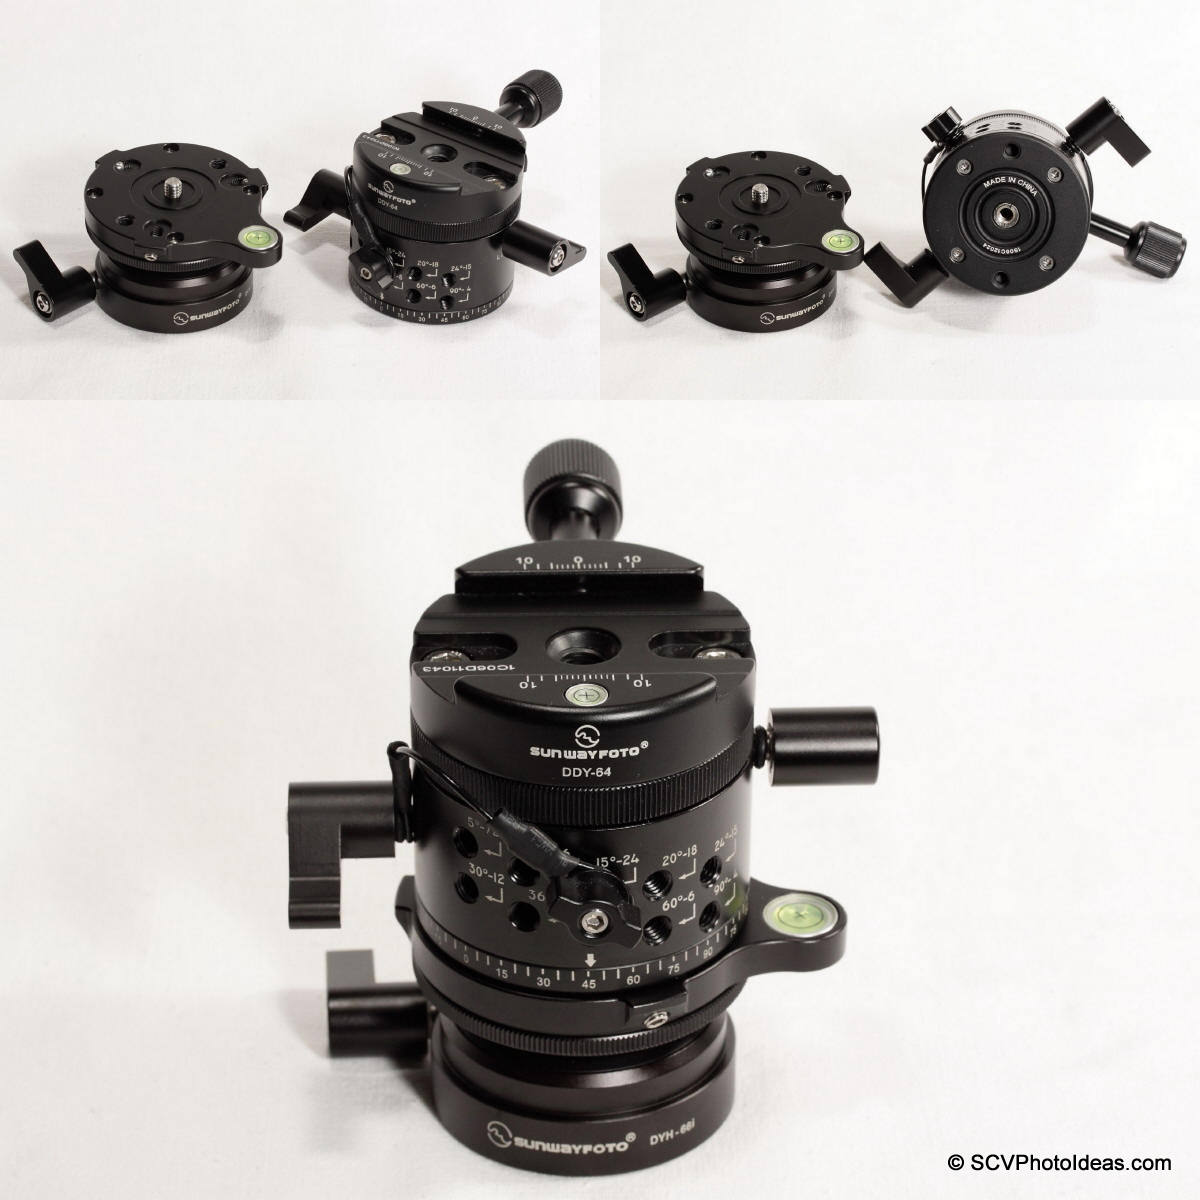 Sunwayfoto DDP-64M+DDY-64 direct mounting on DYH-66i